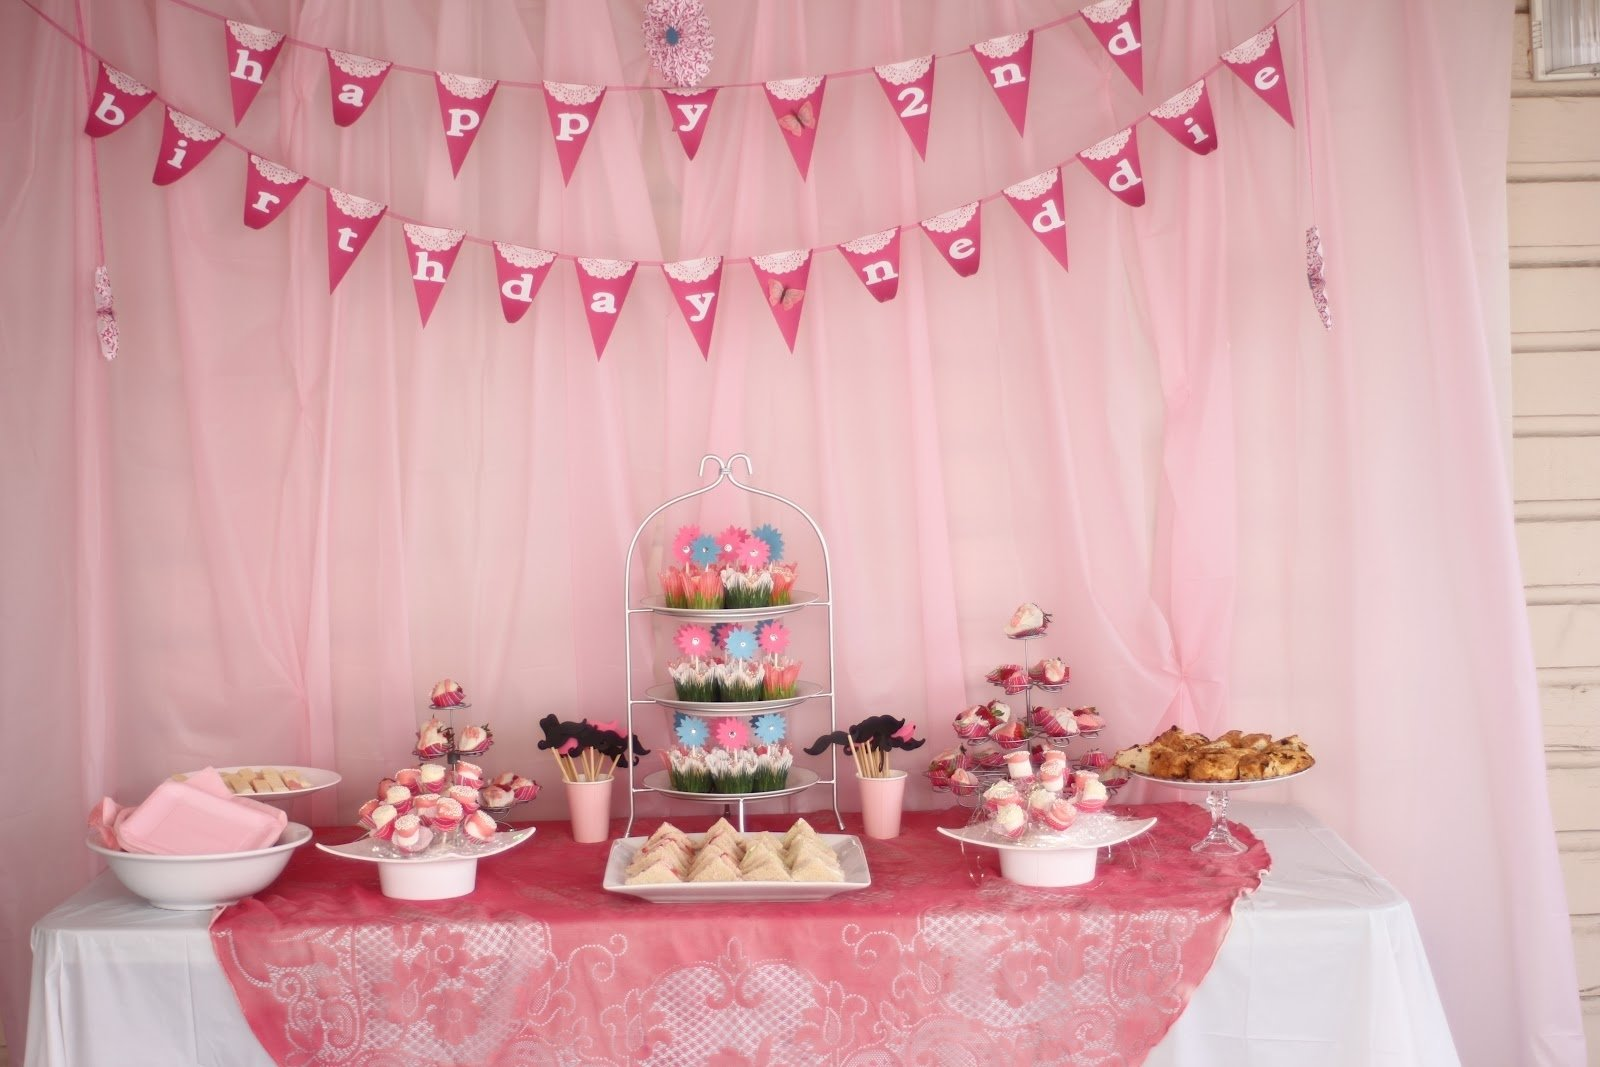 10 Best Birthday Party Ideas For 2 Year Old girl birthday party ideas for year olds home design ideas 9